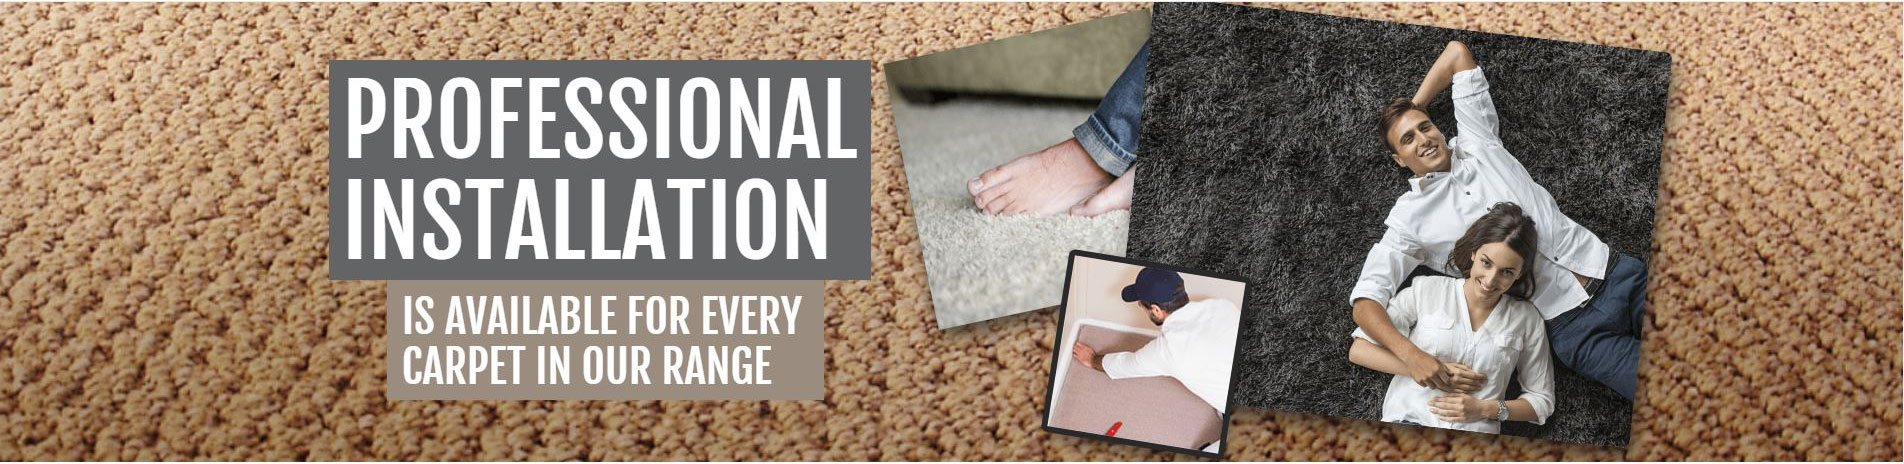 our carpet range